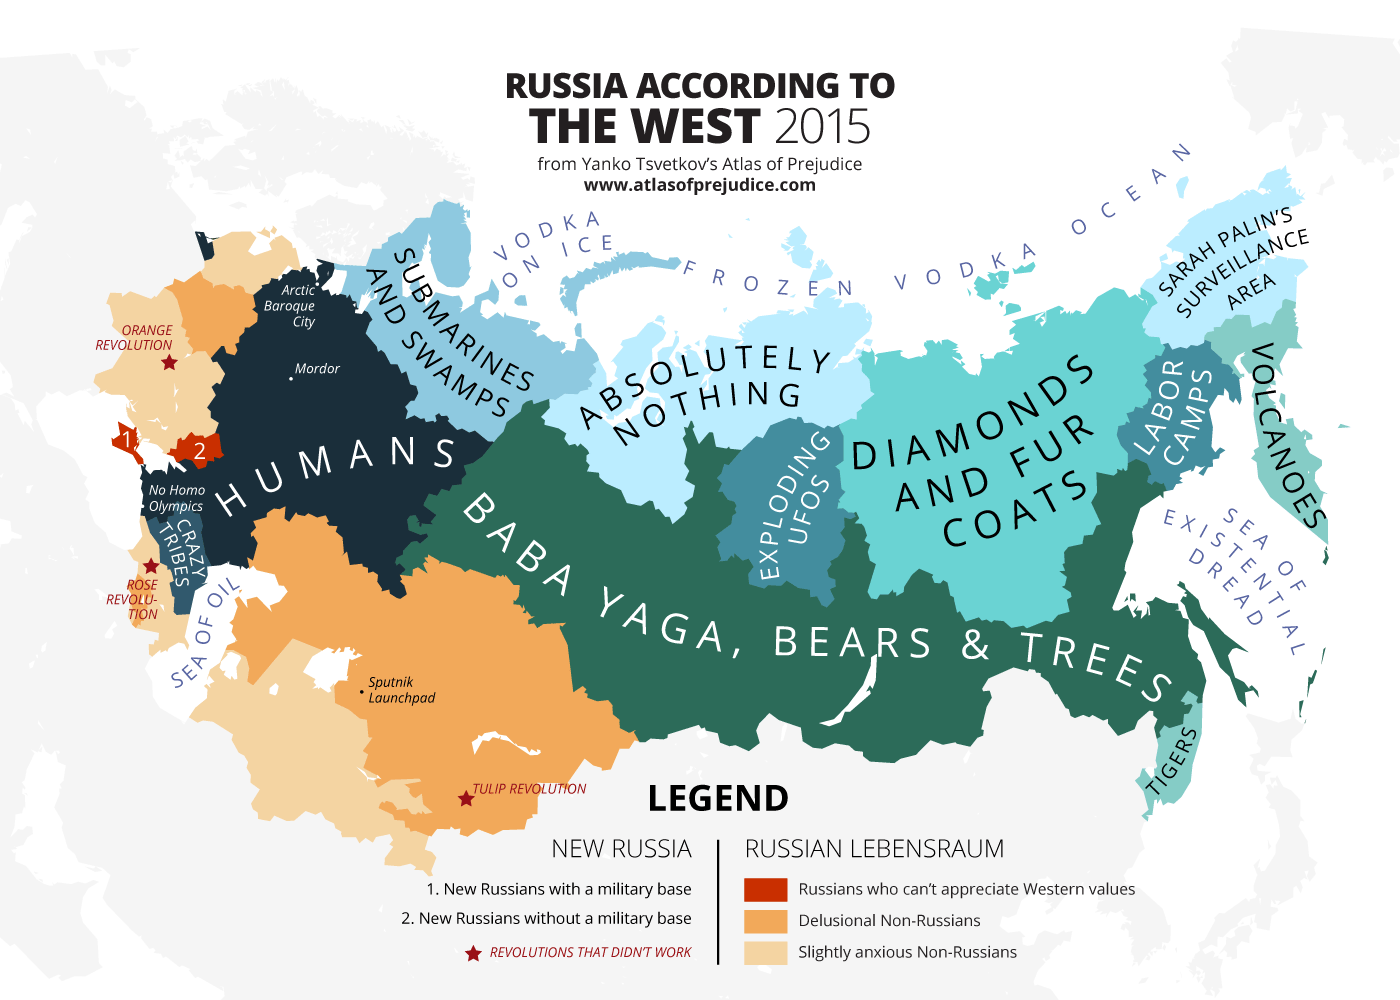 Russia Seen From the West - Atlas of Prejudice